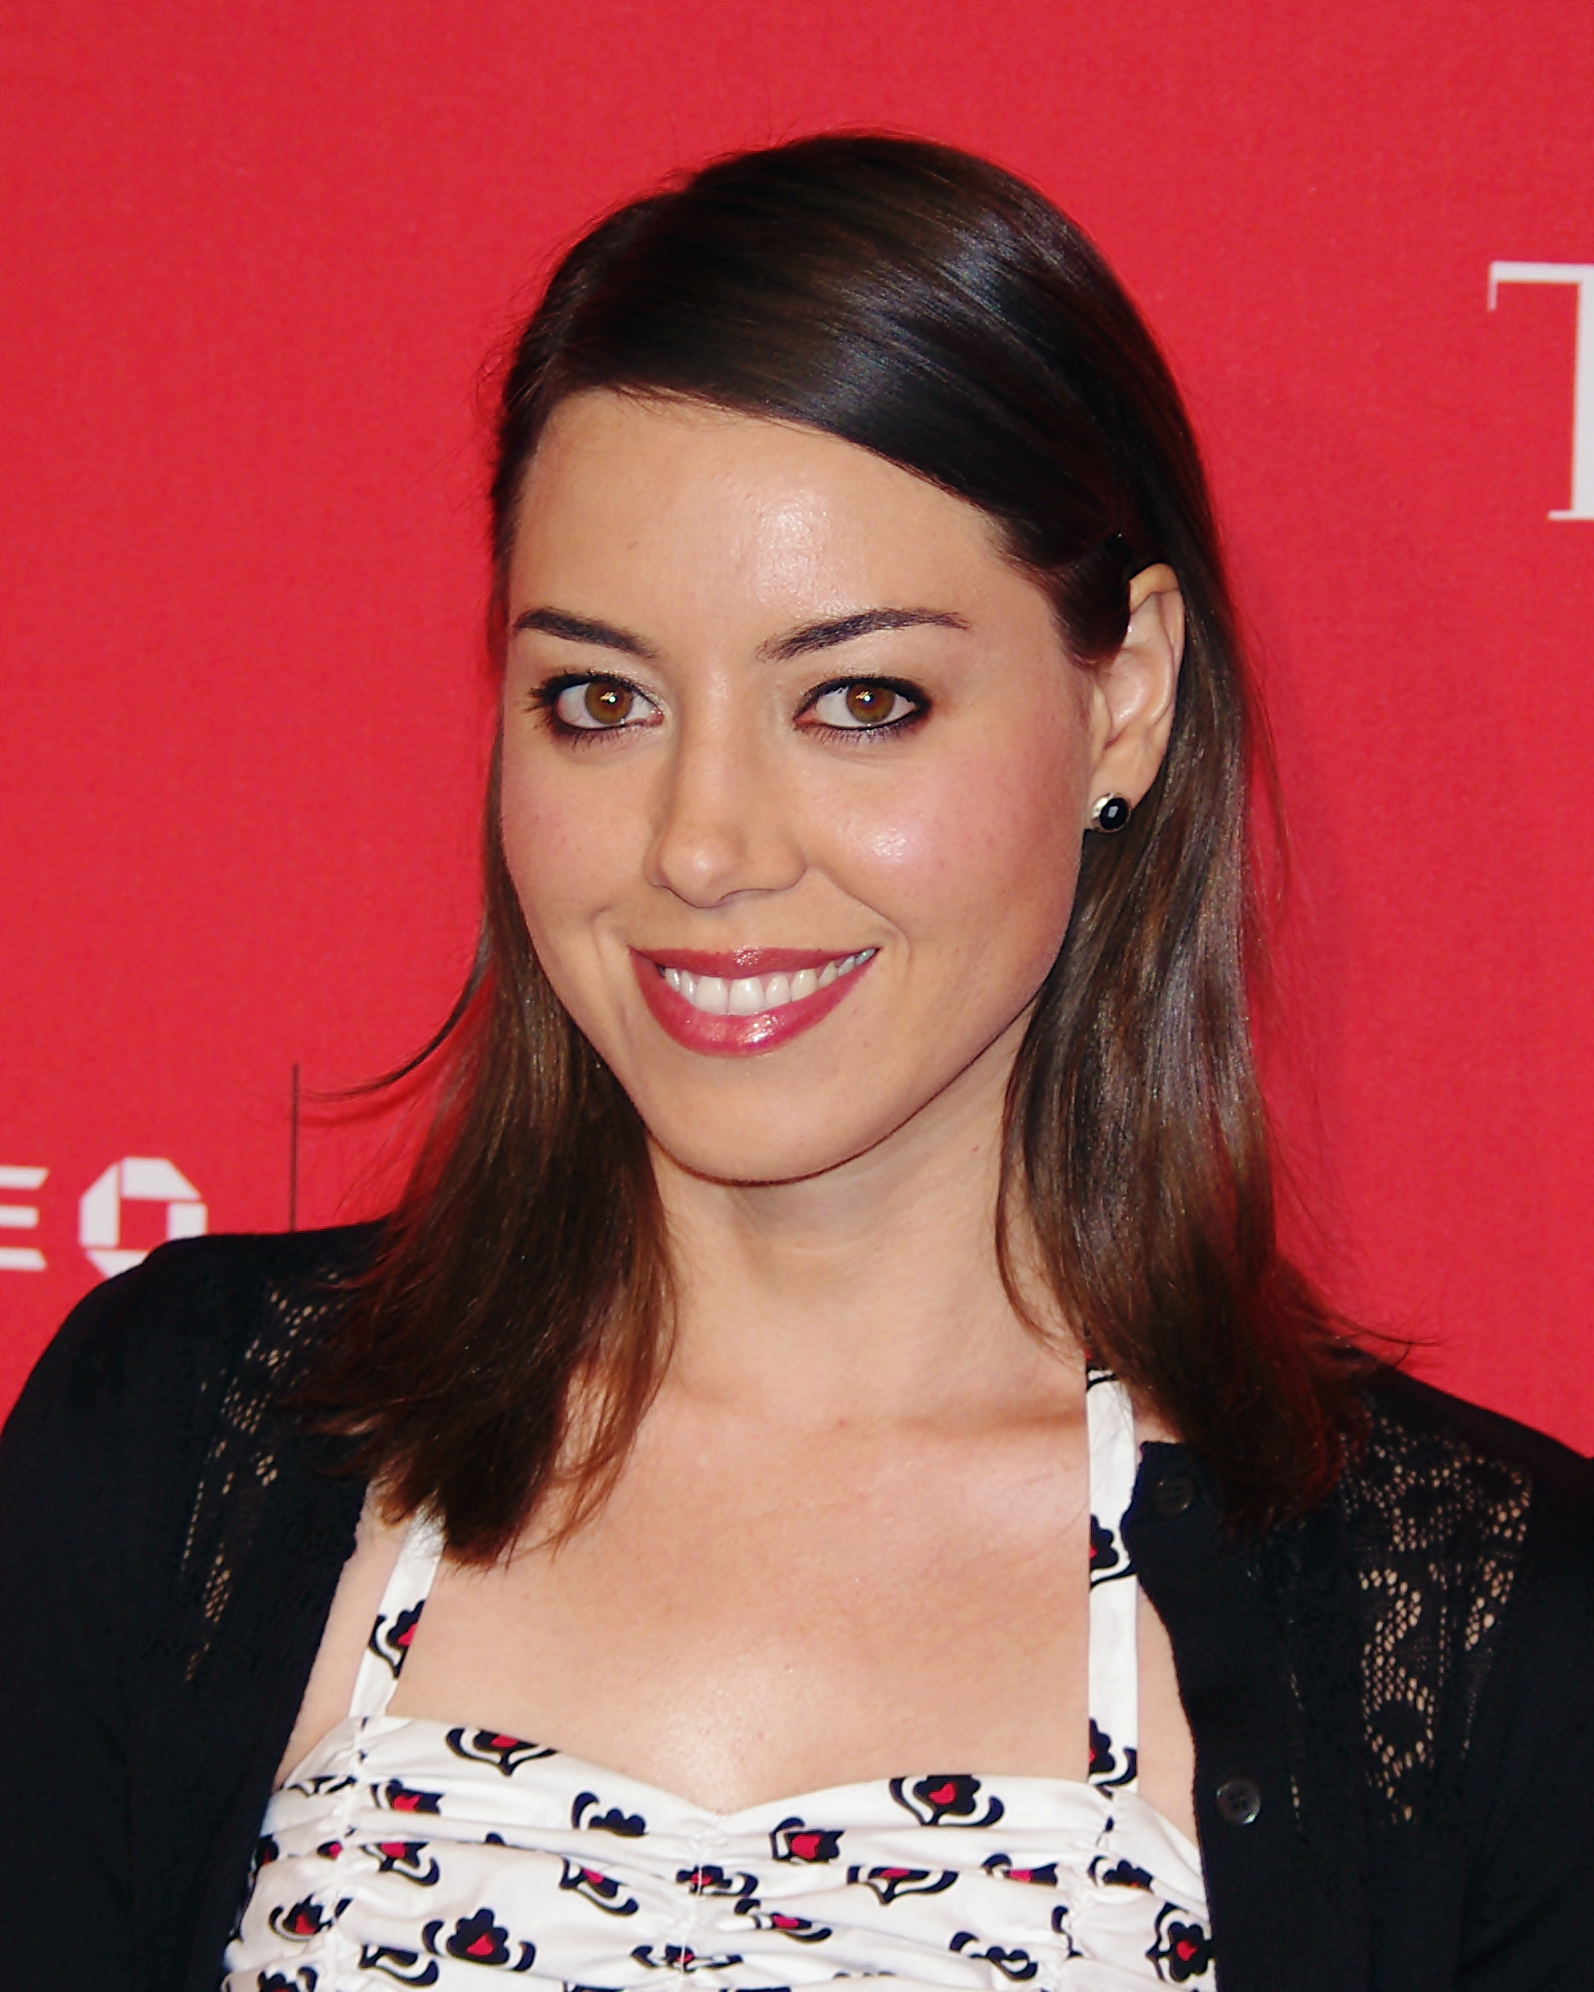 The 34-year old daughter of father David Plaza and mother Bernadette Plaza Aubrey Plaza in 2018 photo. Aubrey Plaza earned a  million dollar salary - leaving the net worth at 3 million in 2018